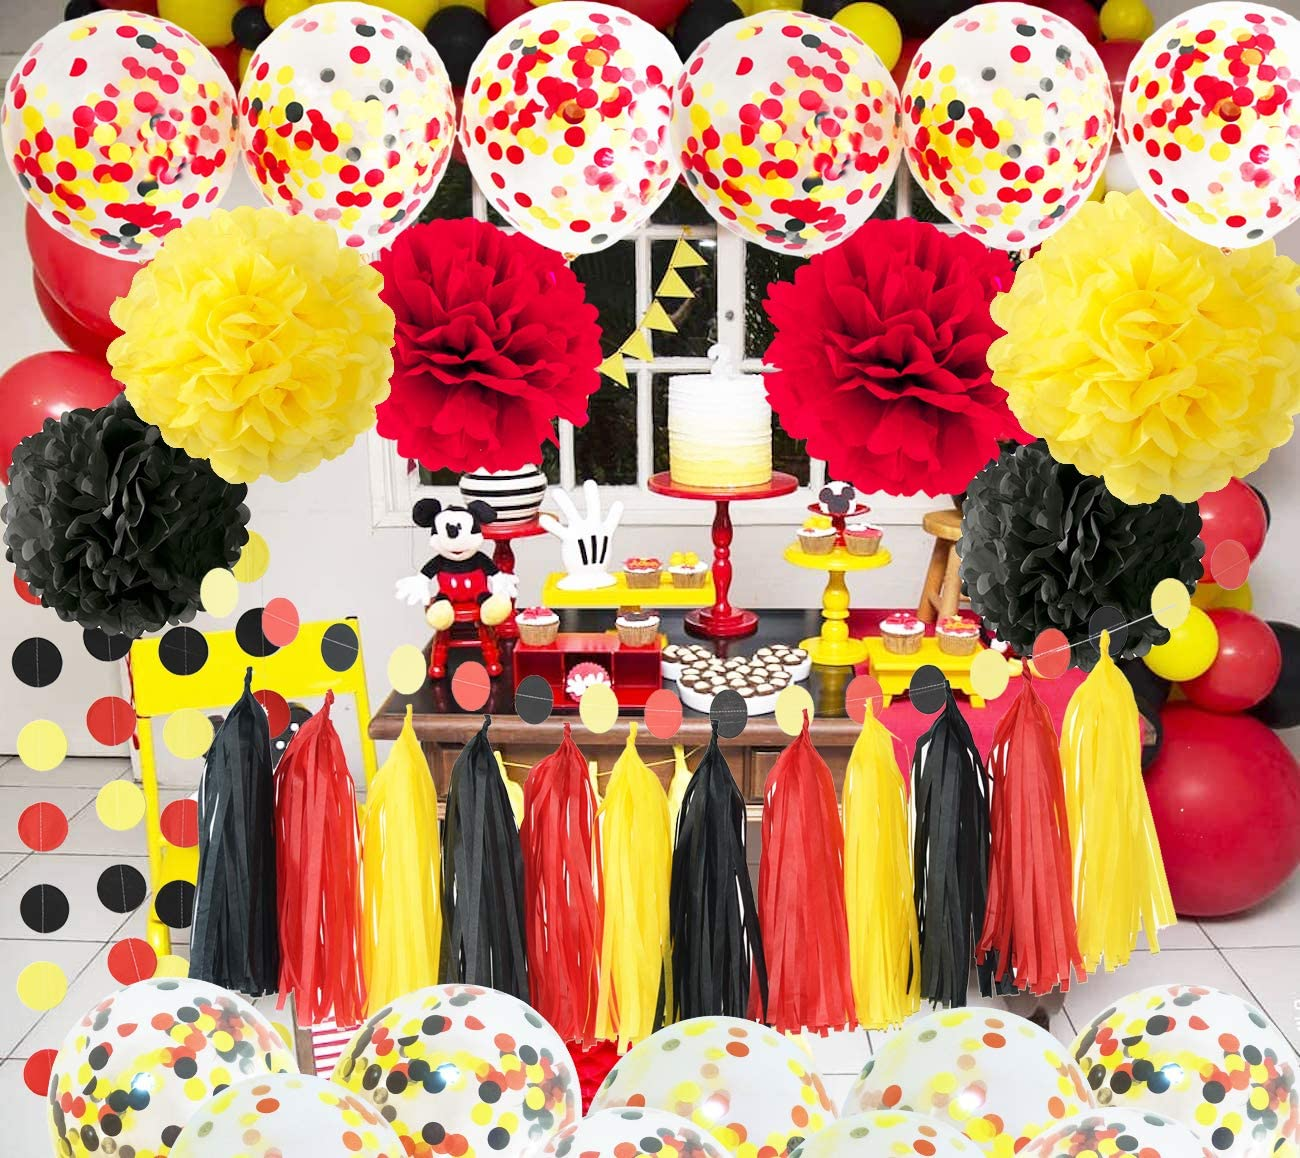 Mickey Mouse Birthday Decorations Mickey Mouse Party Supplies Yellow Black Red Confetti Ballons Fire Truck Birthday Banner,Minnie Mouse Birthday Party ...